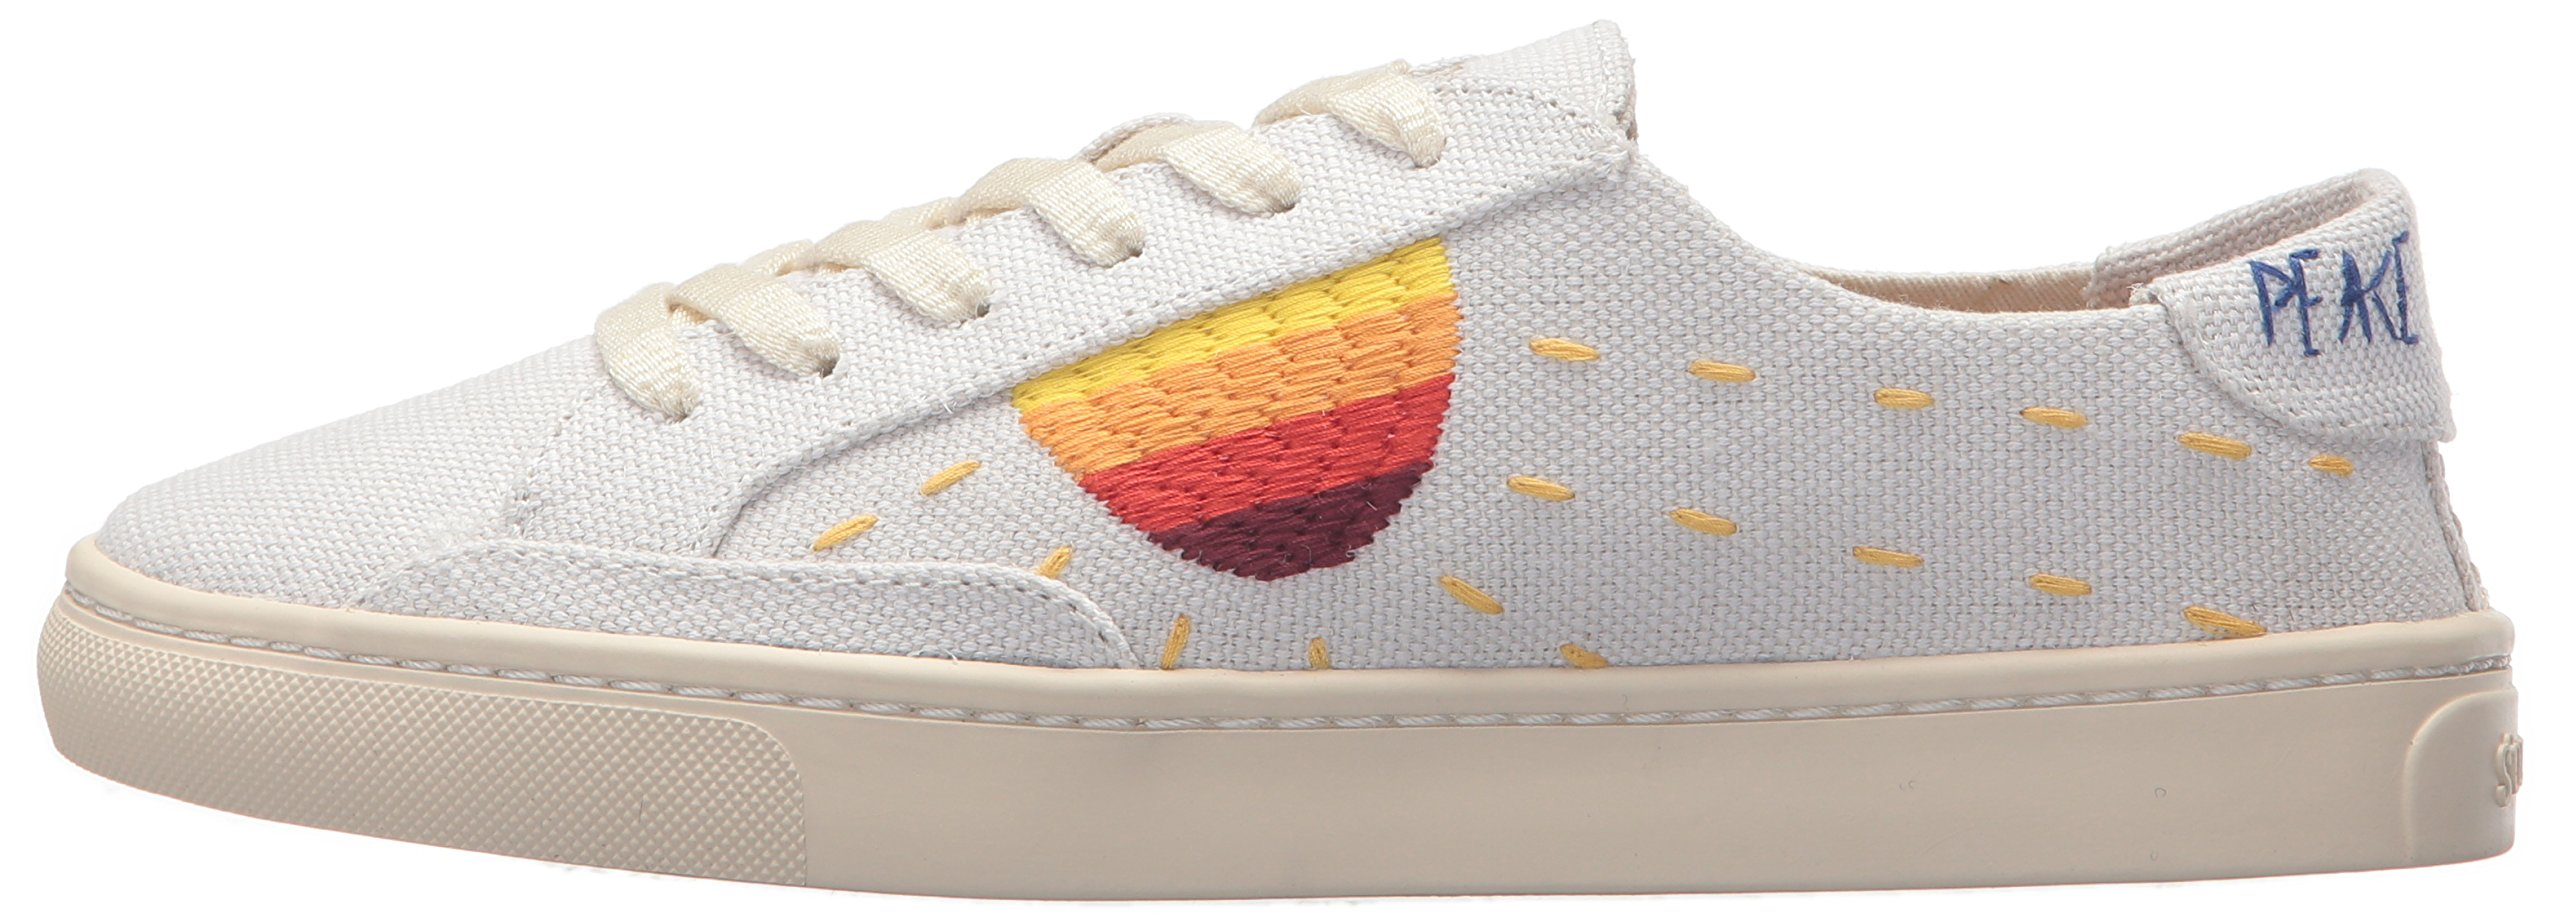 7d69e38a9 Soludos Women's Embroidered Sun Sneaker | Amazon